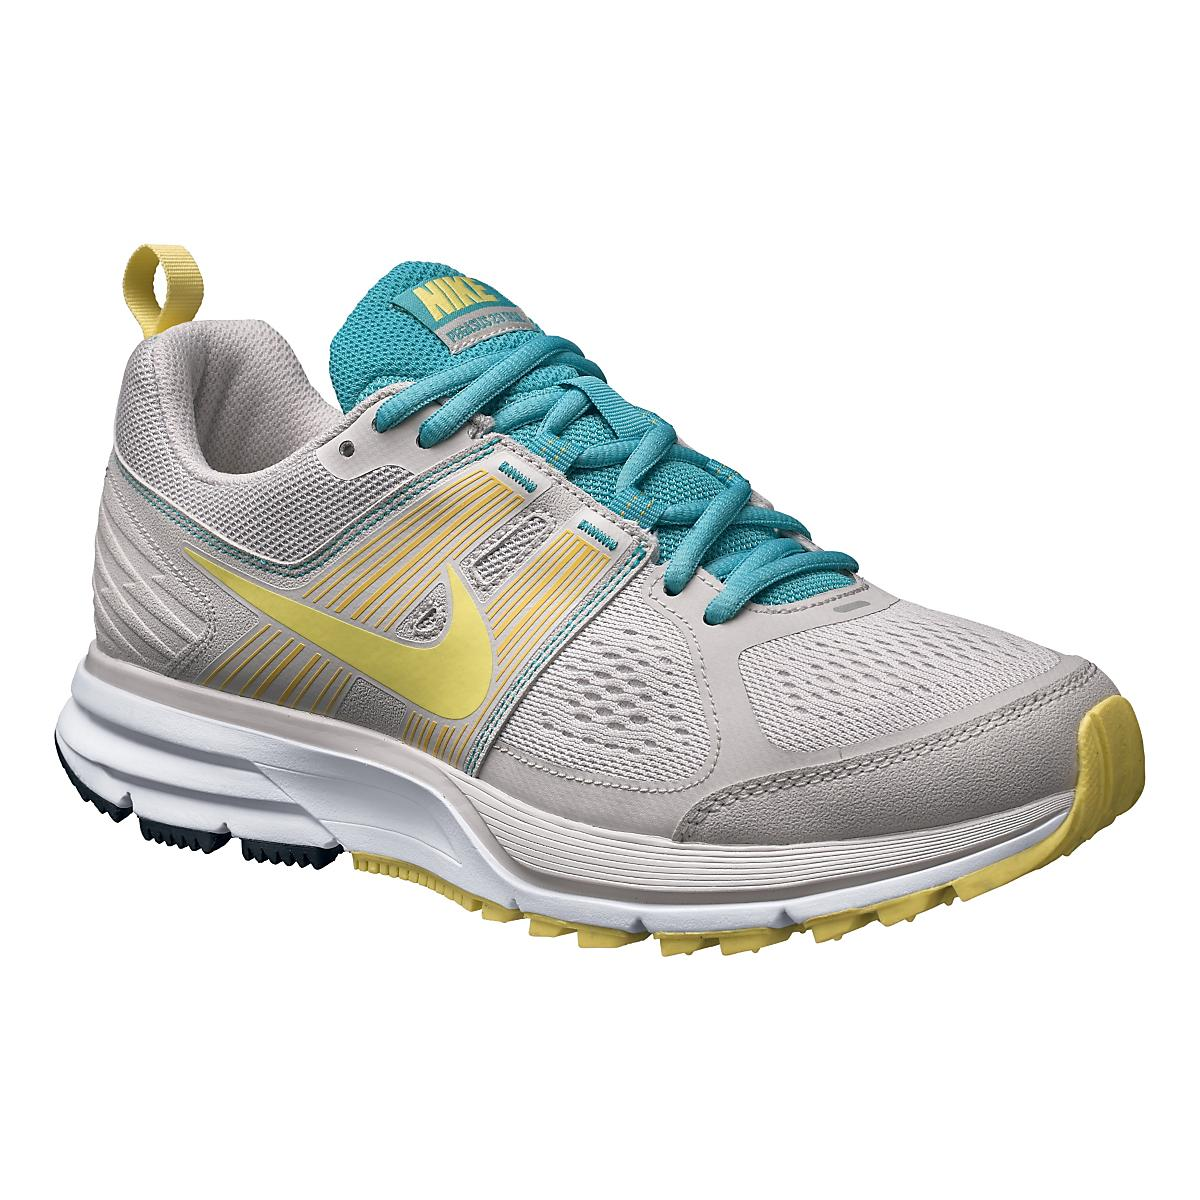 wholesale dealer f81cd cd653 Womens Nike Air Pegasus+ 29 Trail Trail Running Shoe at Road Runner Sports